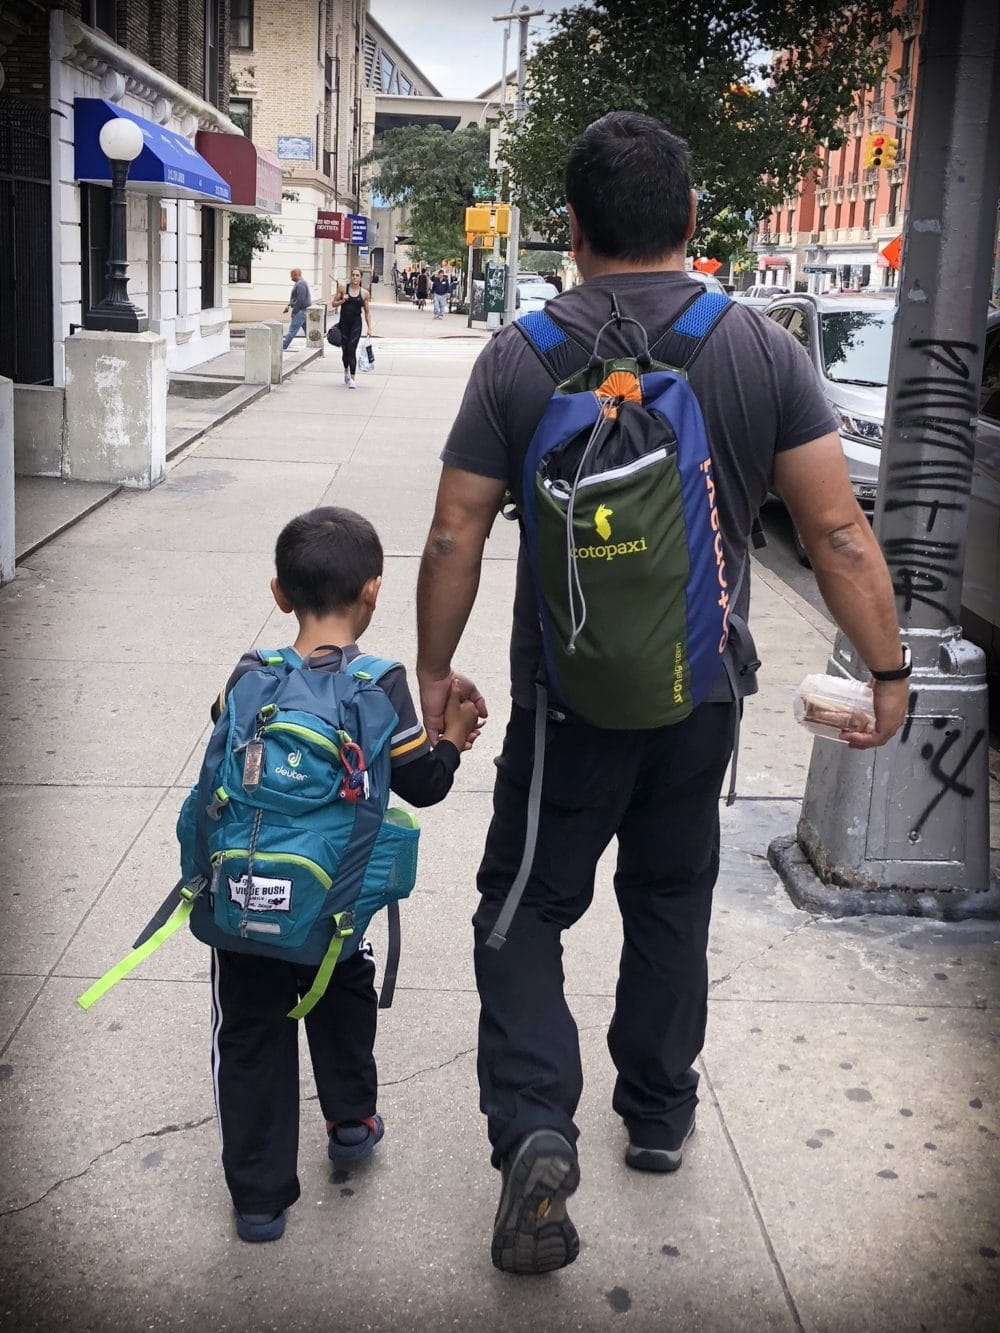 A man and son walking on a sidewalk in New York city with backpacks for minimalistic travel